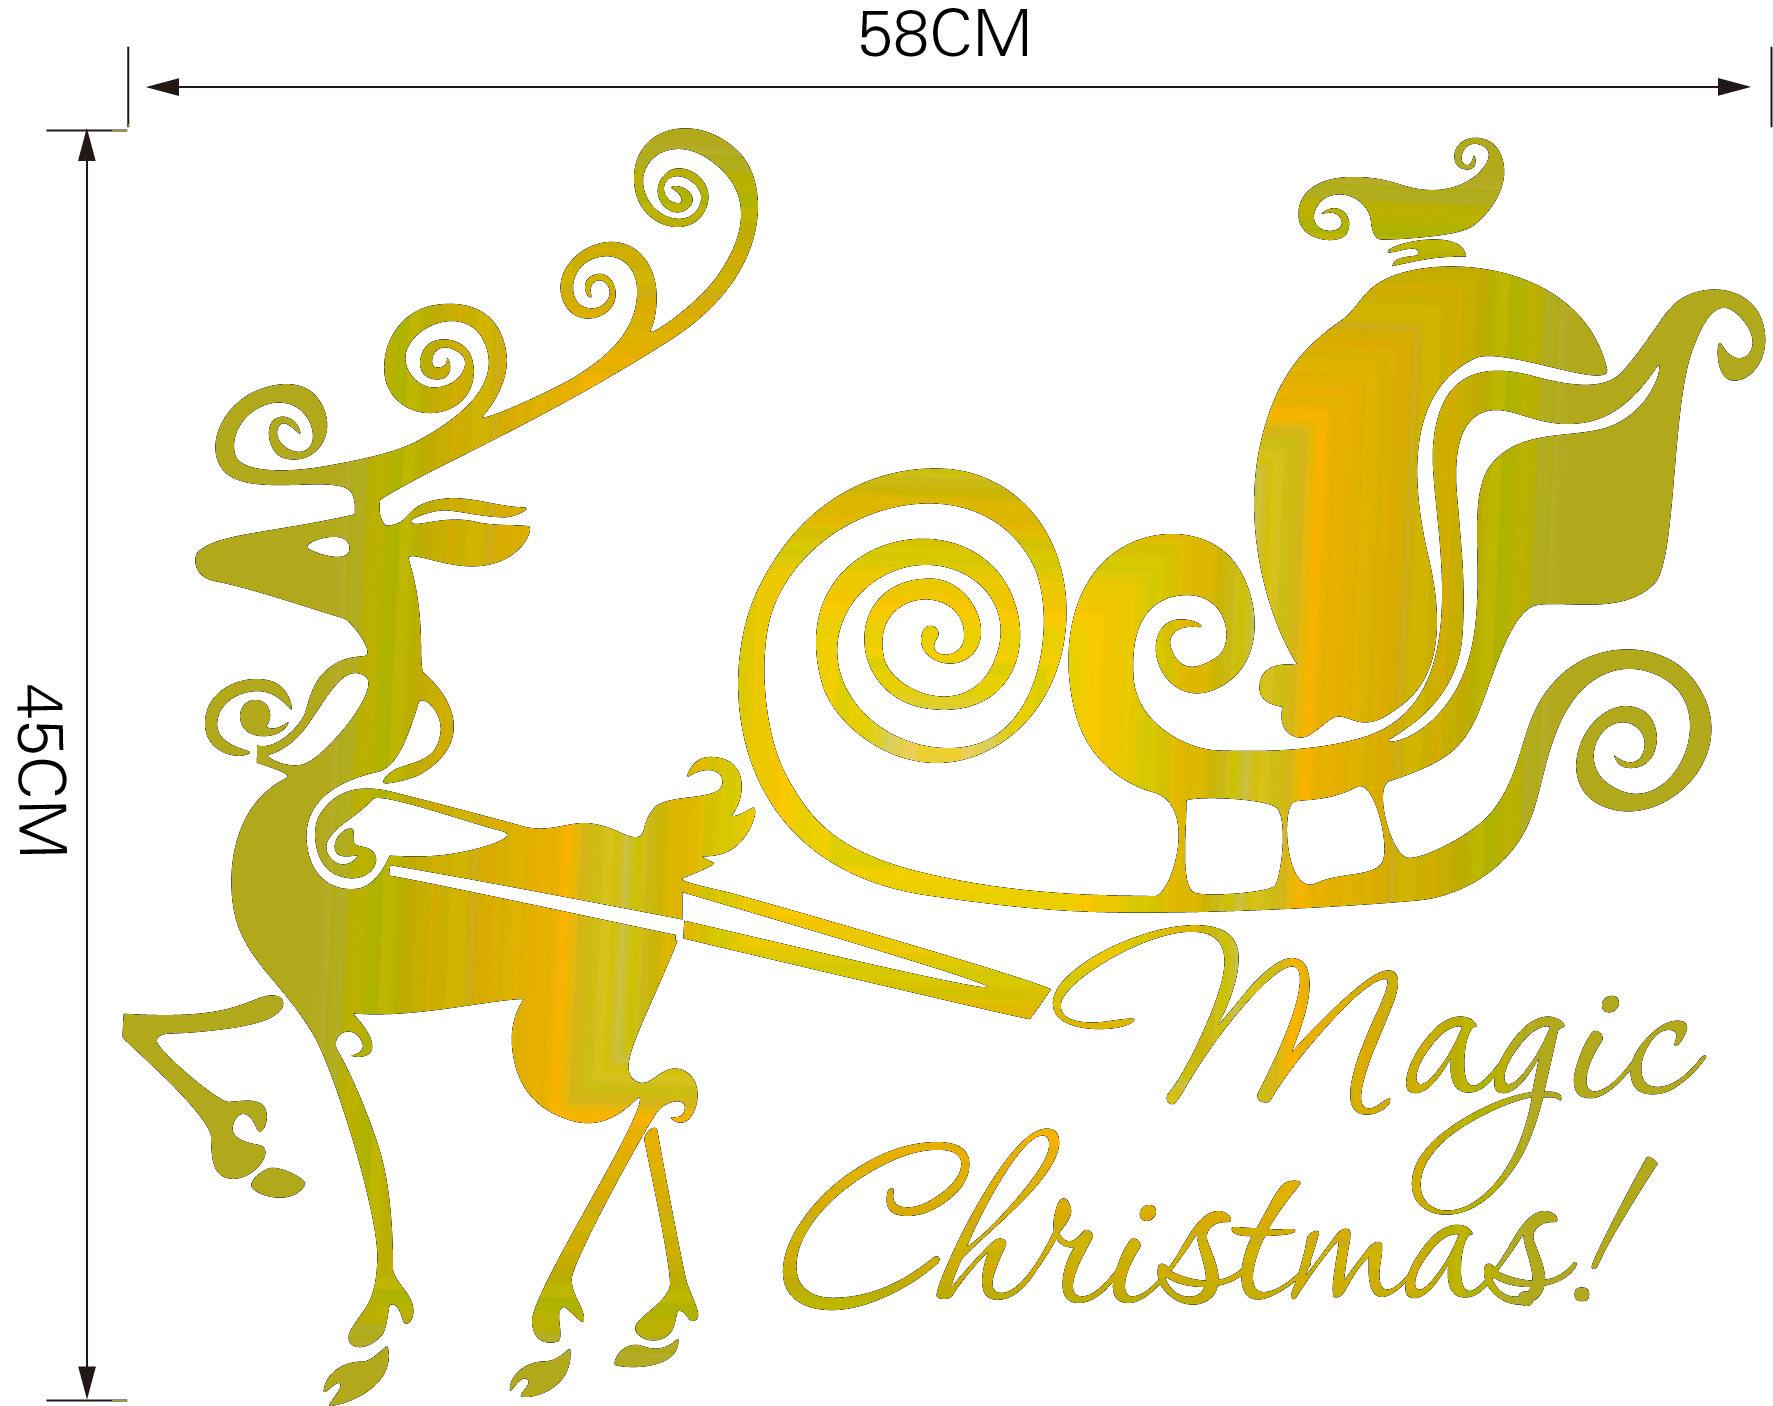 Christmas Decoration decal home wall Wallpaper Vinyl Wall Sticker Merry Christmas Ornament Vinilos Decorativos Christmas Products